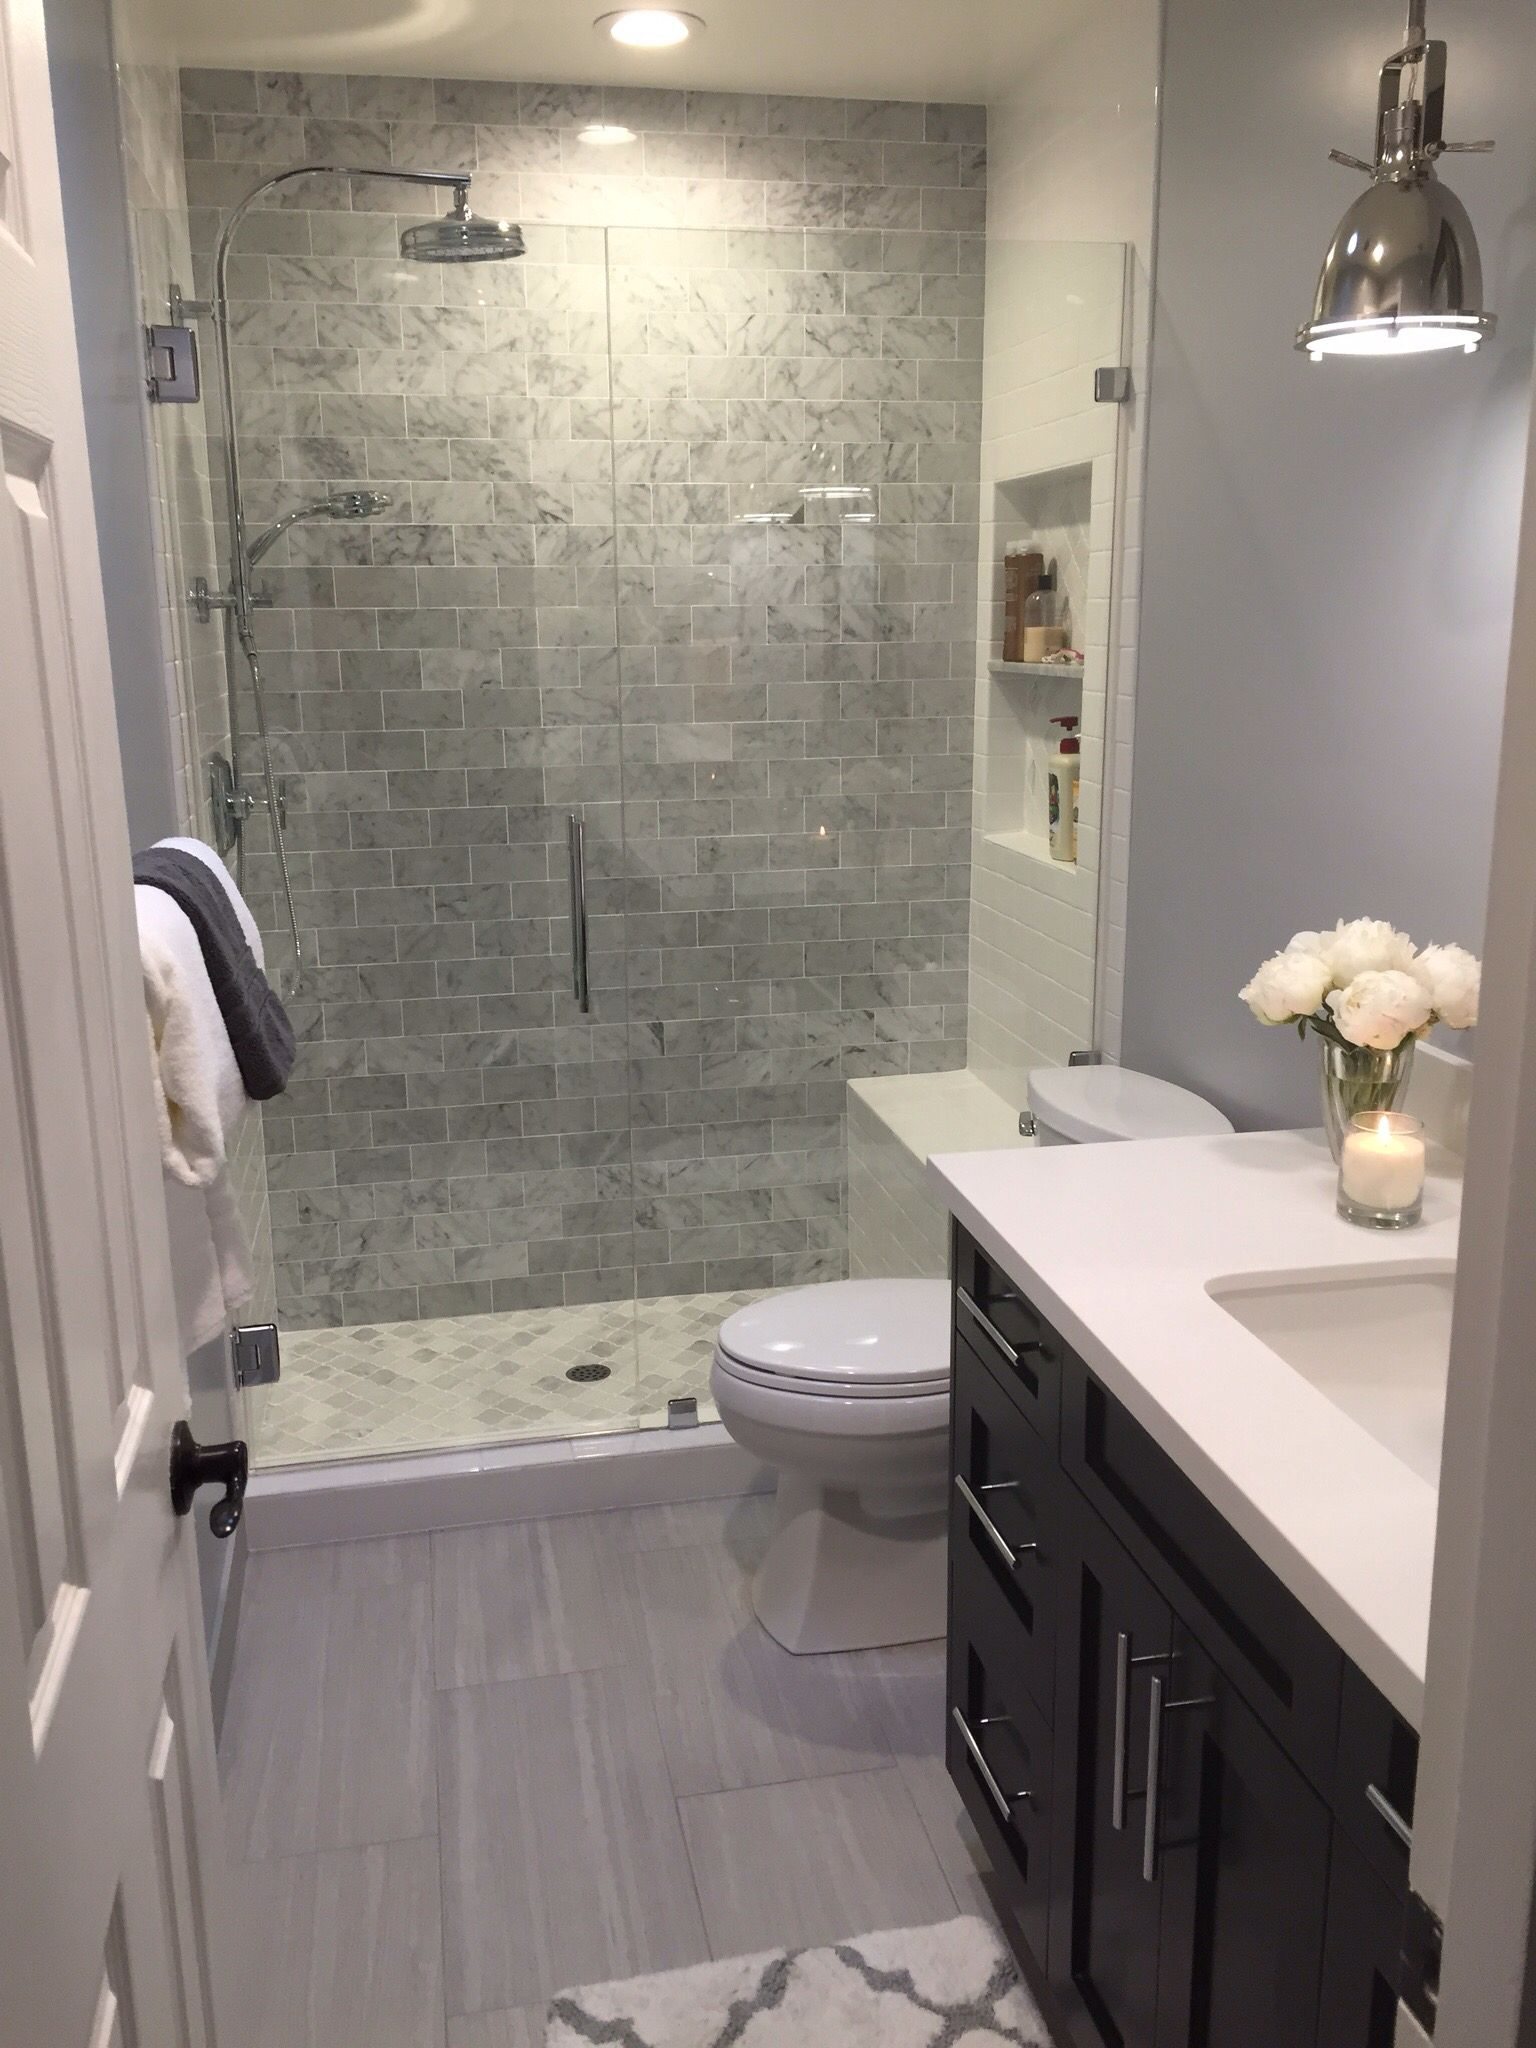 The Finished Product Small Bathroom Remodel Bathrooms Remodel Bathroom Layout